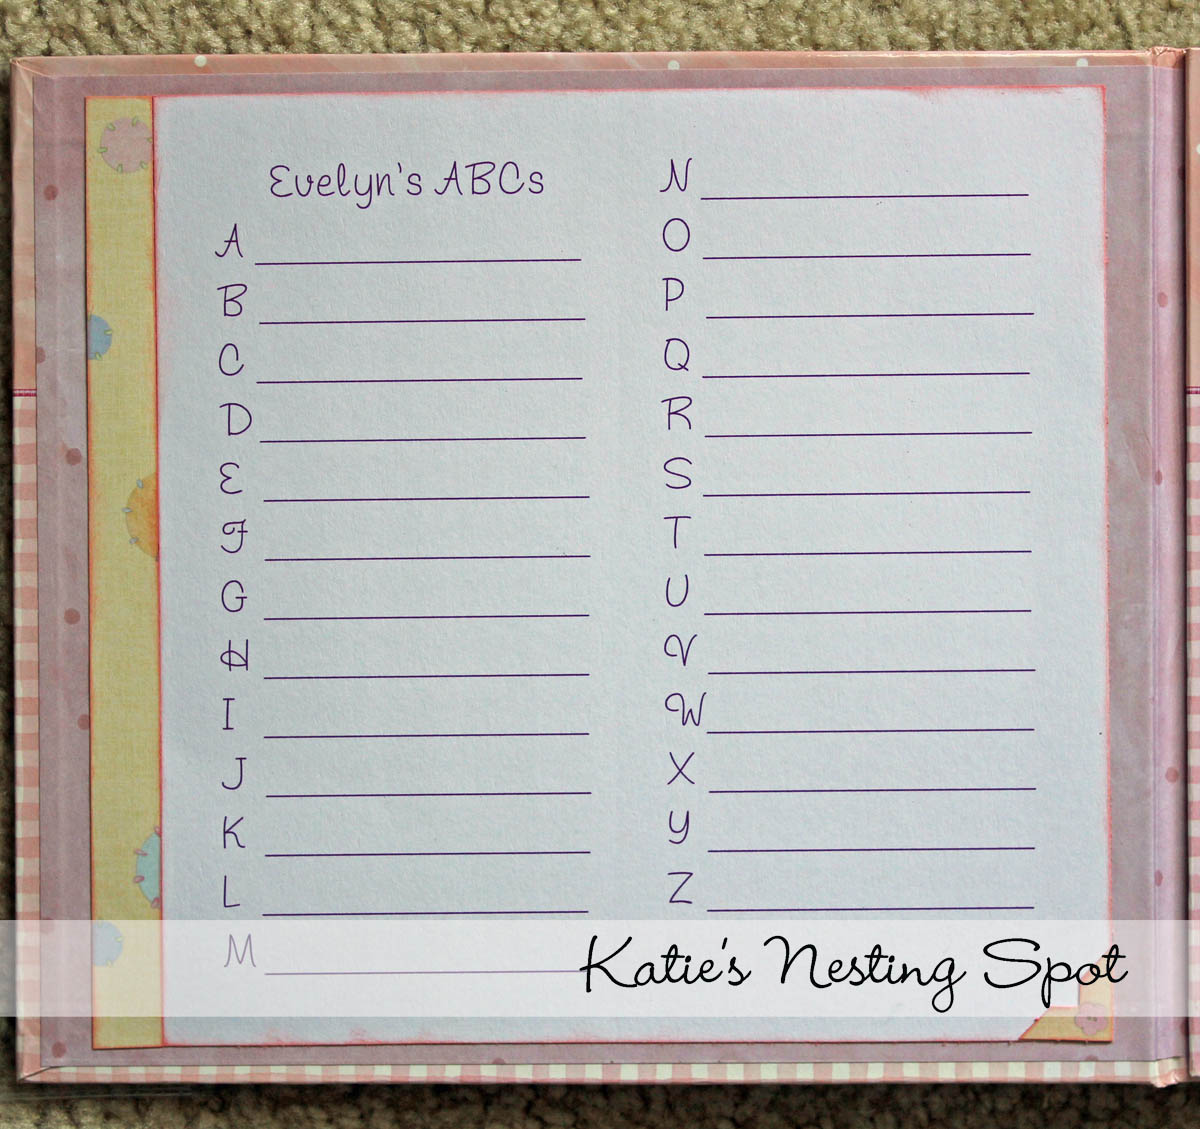 Abc scrapbook ideas list - It S Been Waiting In My Stash Along With The Sheet Of Round Letter Stickers From Pebbles Inc For The Next Baby Girl To Be Born Any Alphabet Sticker Set